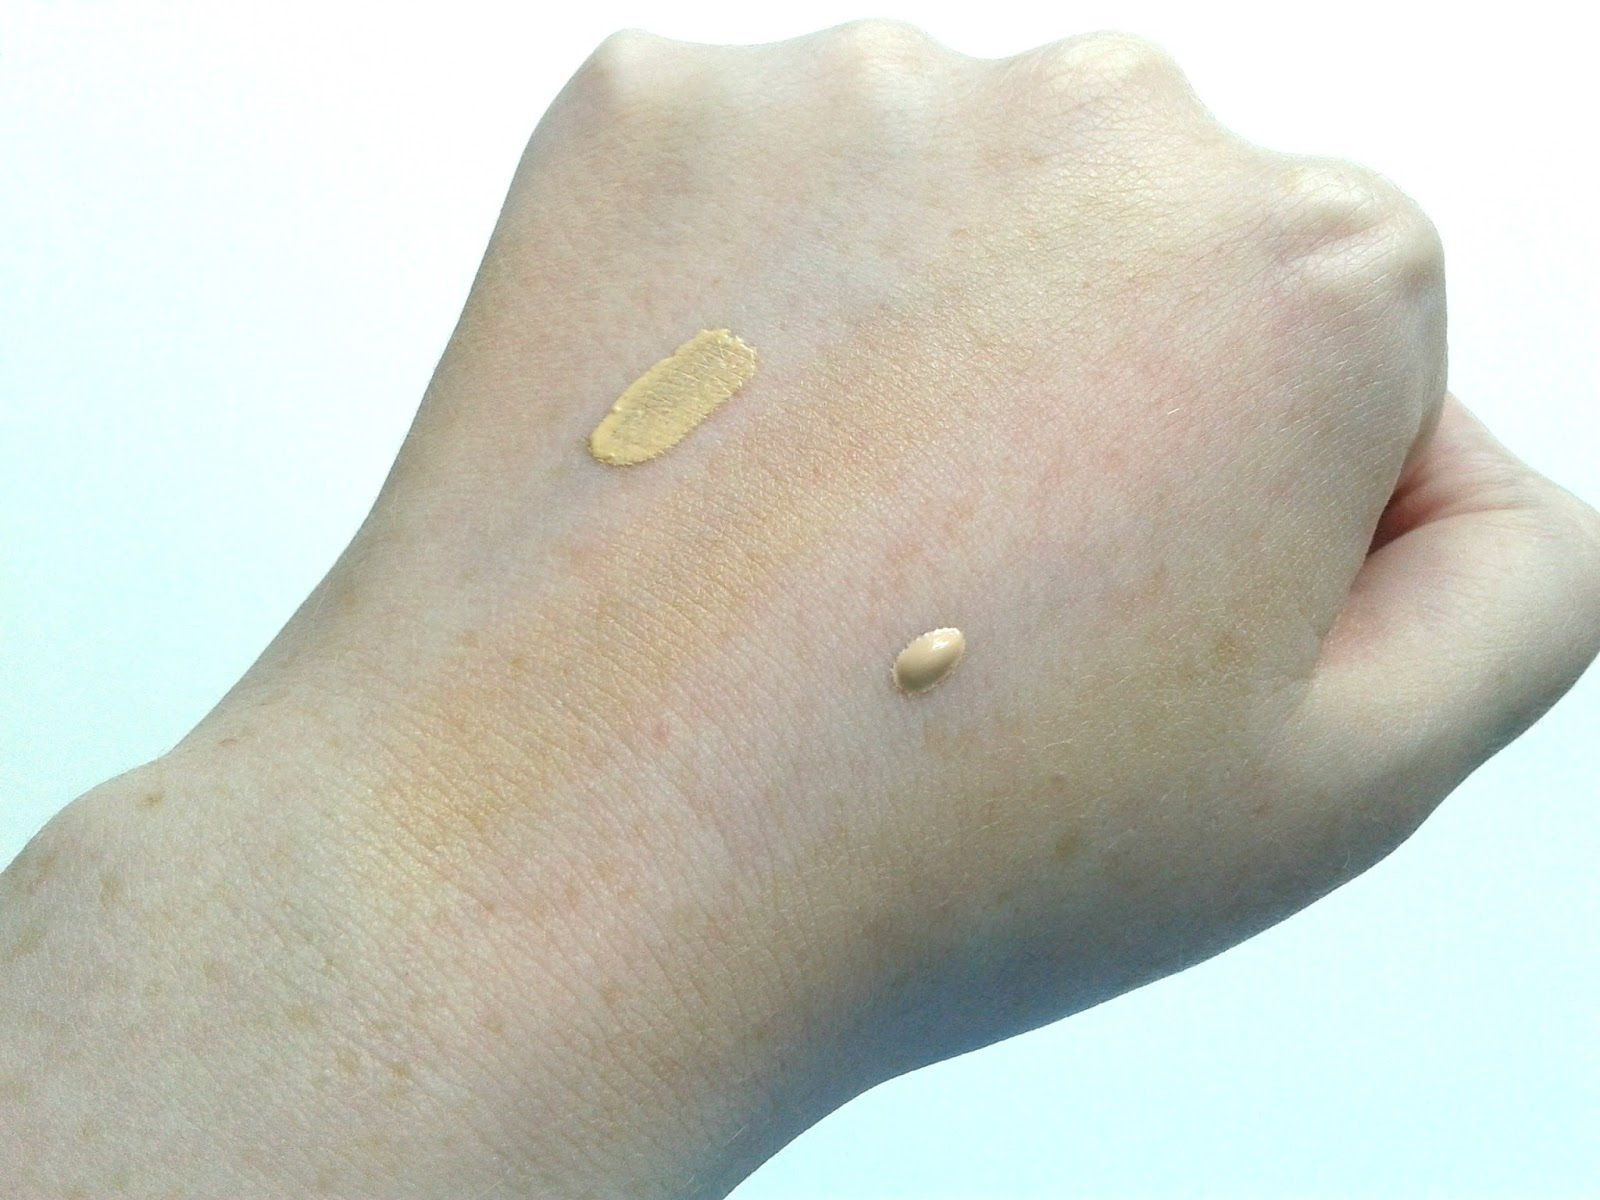 My Must-Have Trio From Makeup Revolution Concealer Foundation Pressed Powder Beauty Review Swatches